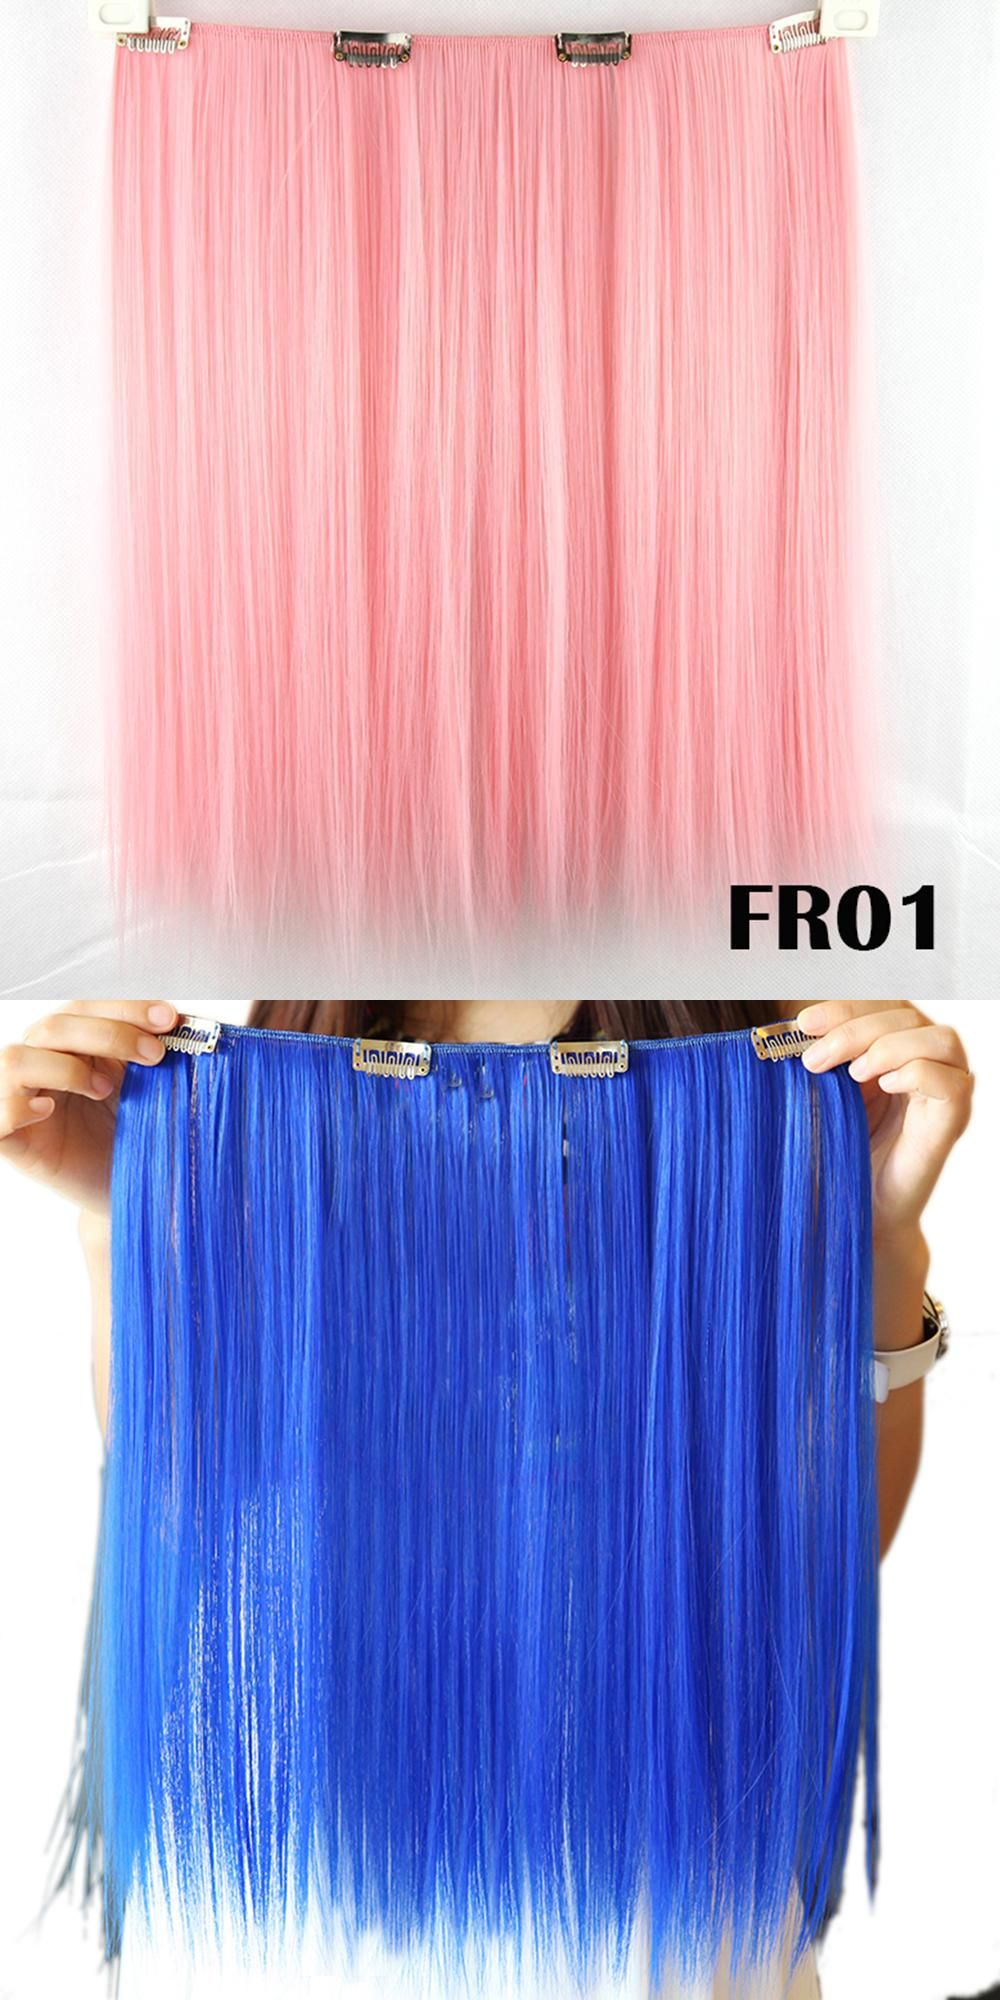 Soowee 9 Colors 42cm Synthetic Hair Straight Clip In Hair Extension